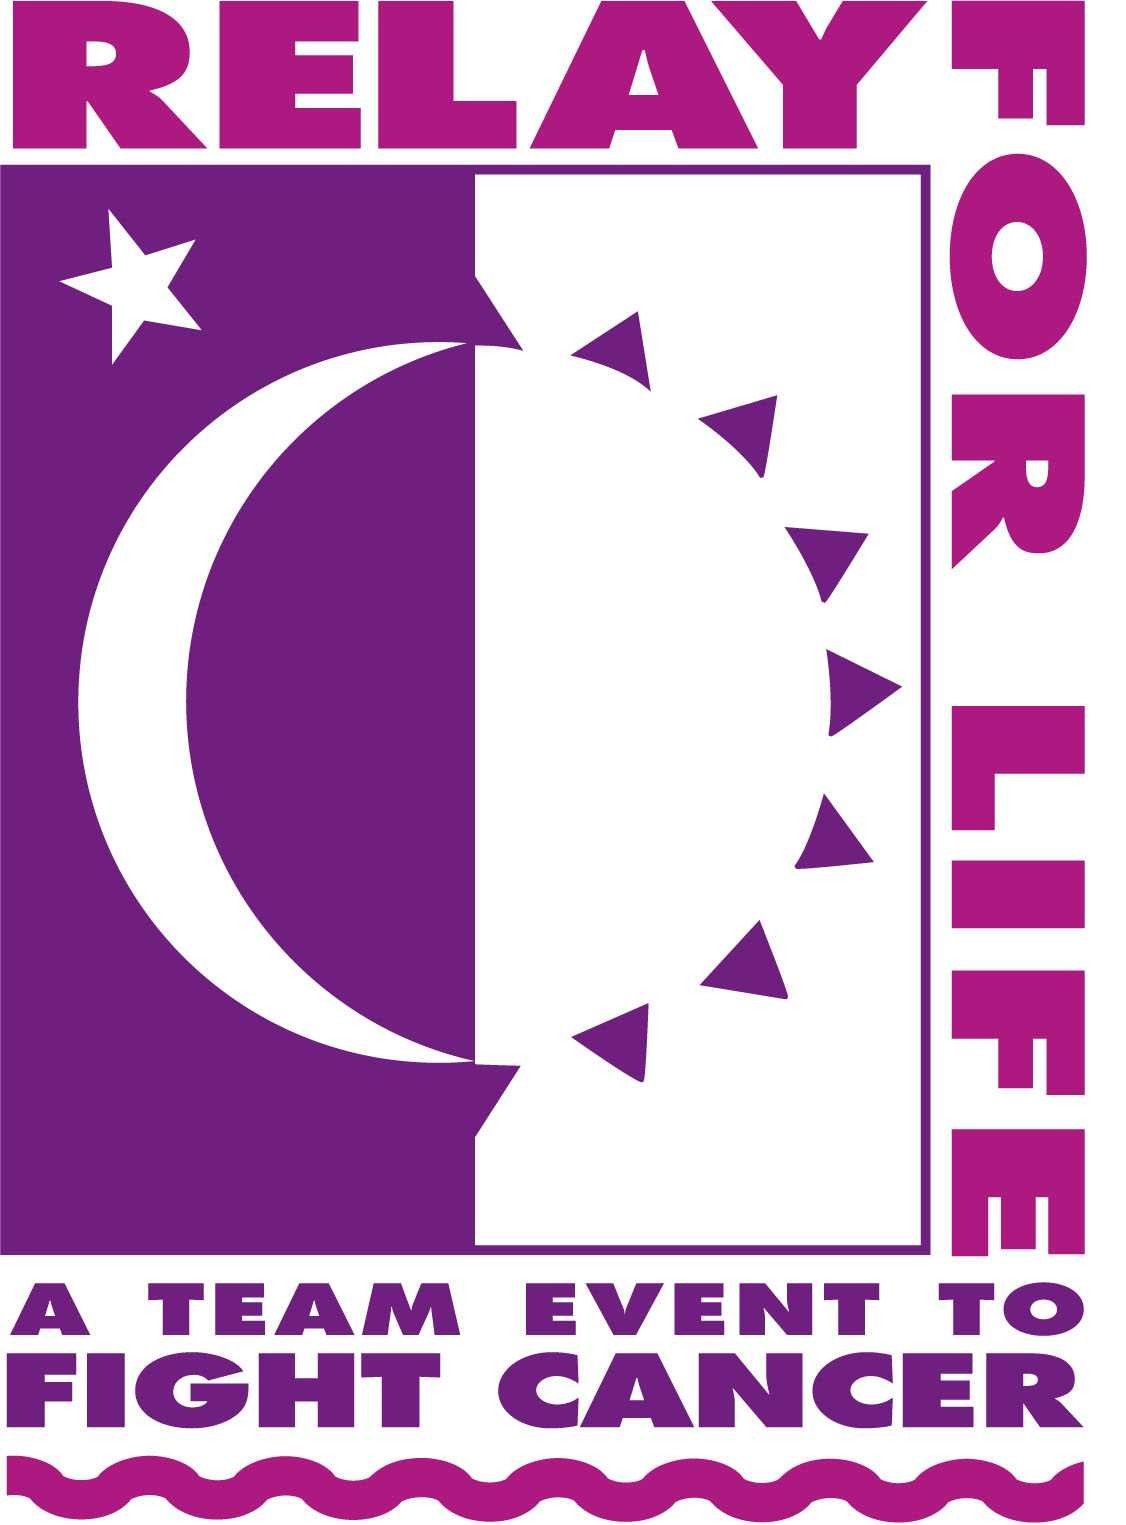 Relay For Life Quotes We Can Beat Cancer  Relay For Life  Pinterest  Beat Cancer